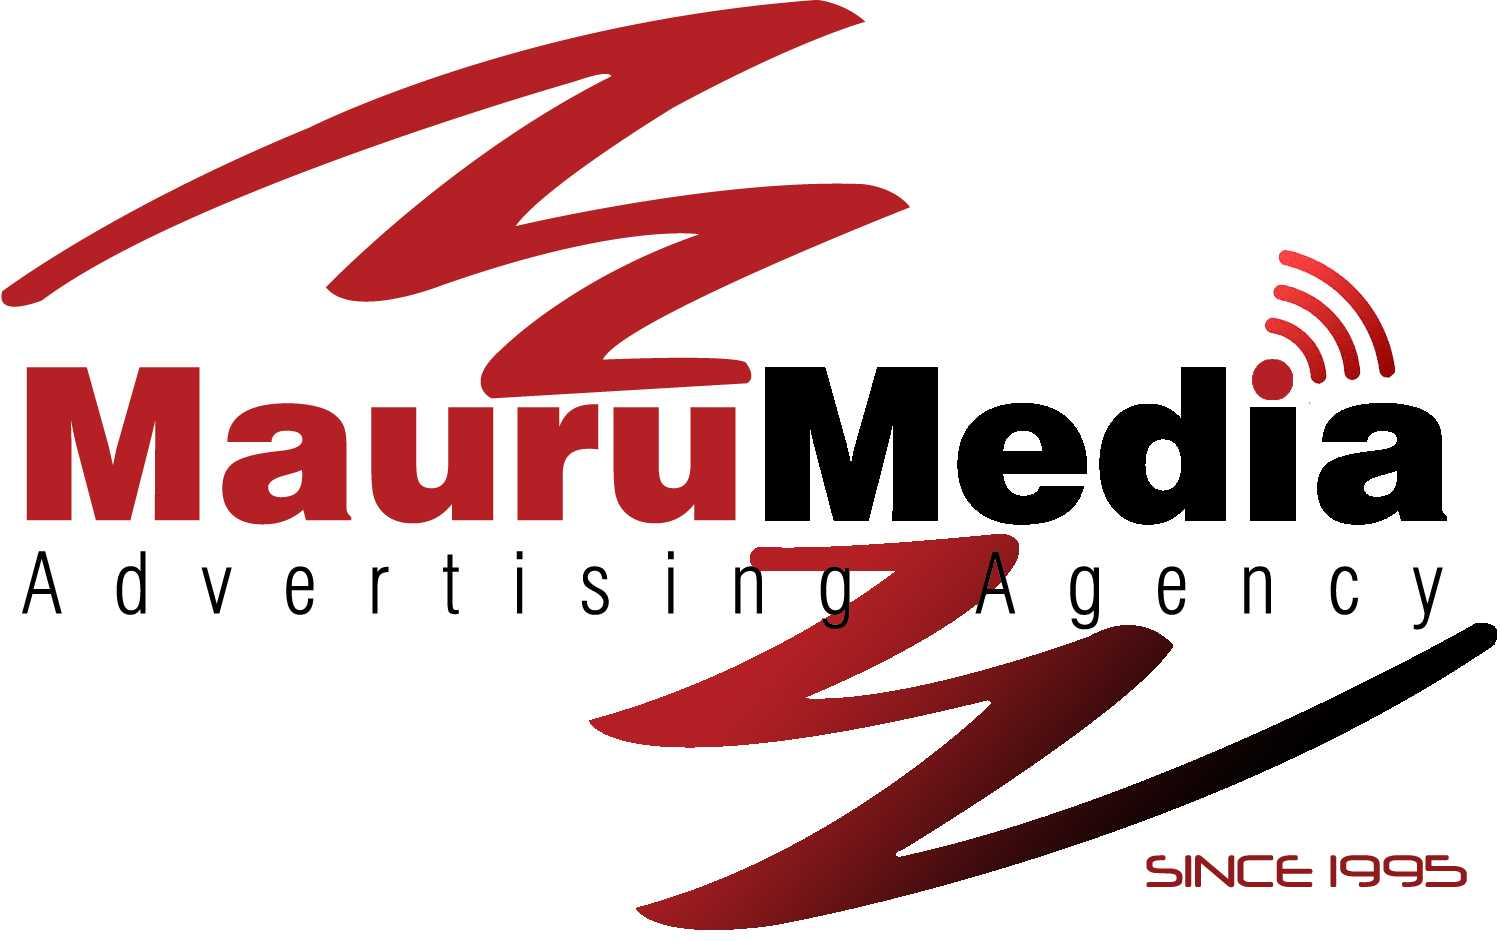 Mauru Media Advertising Agency